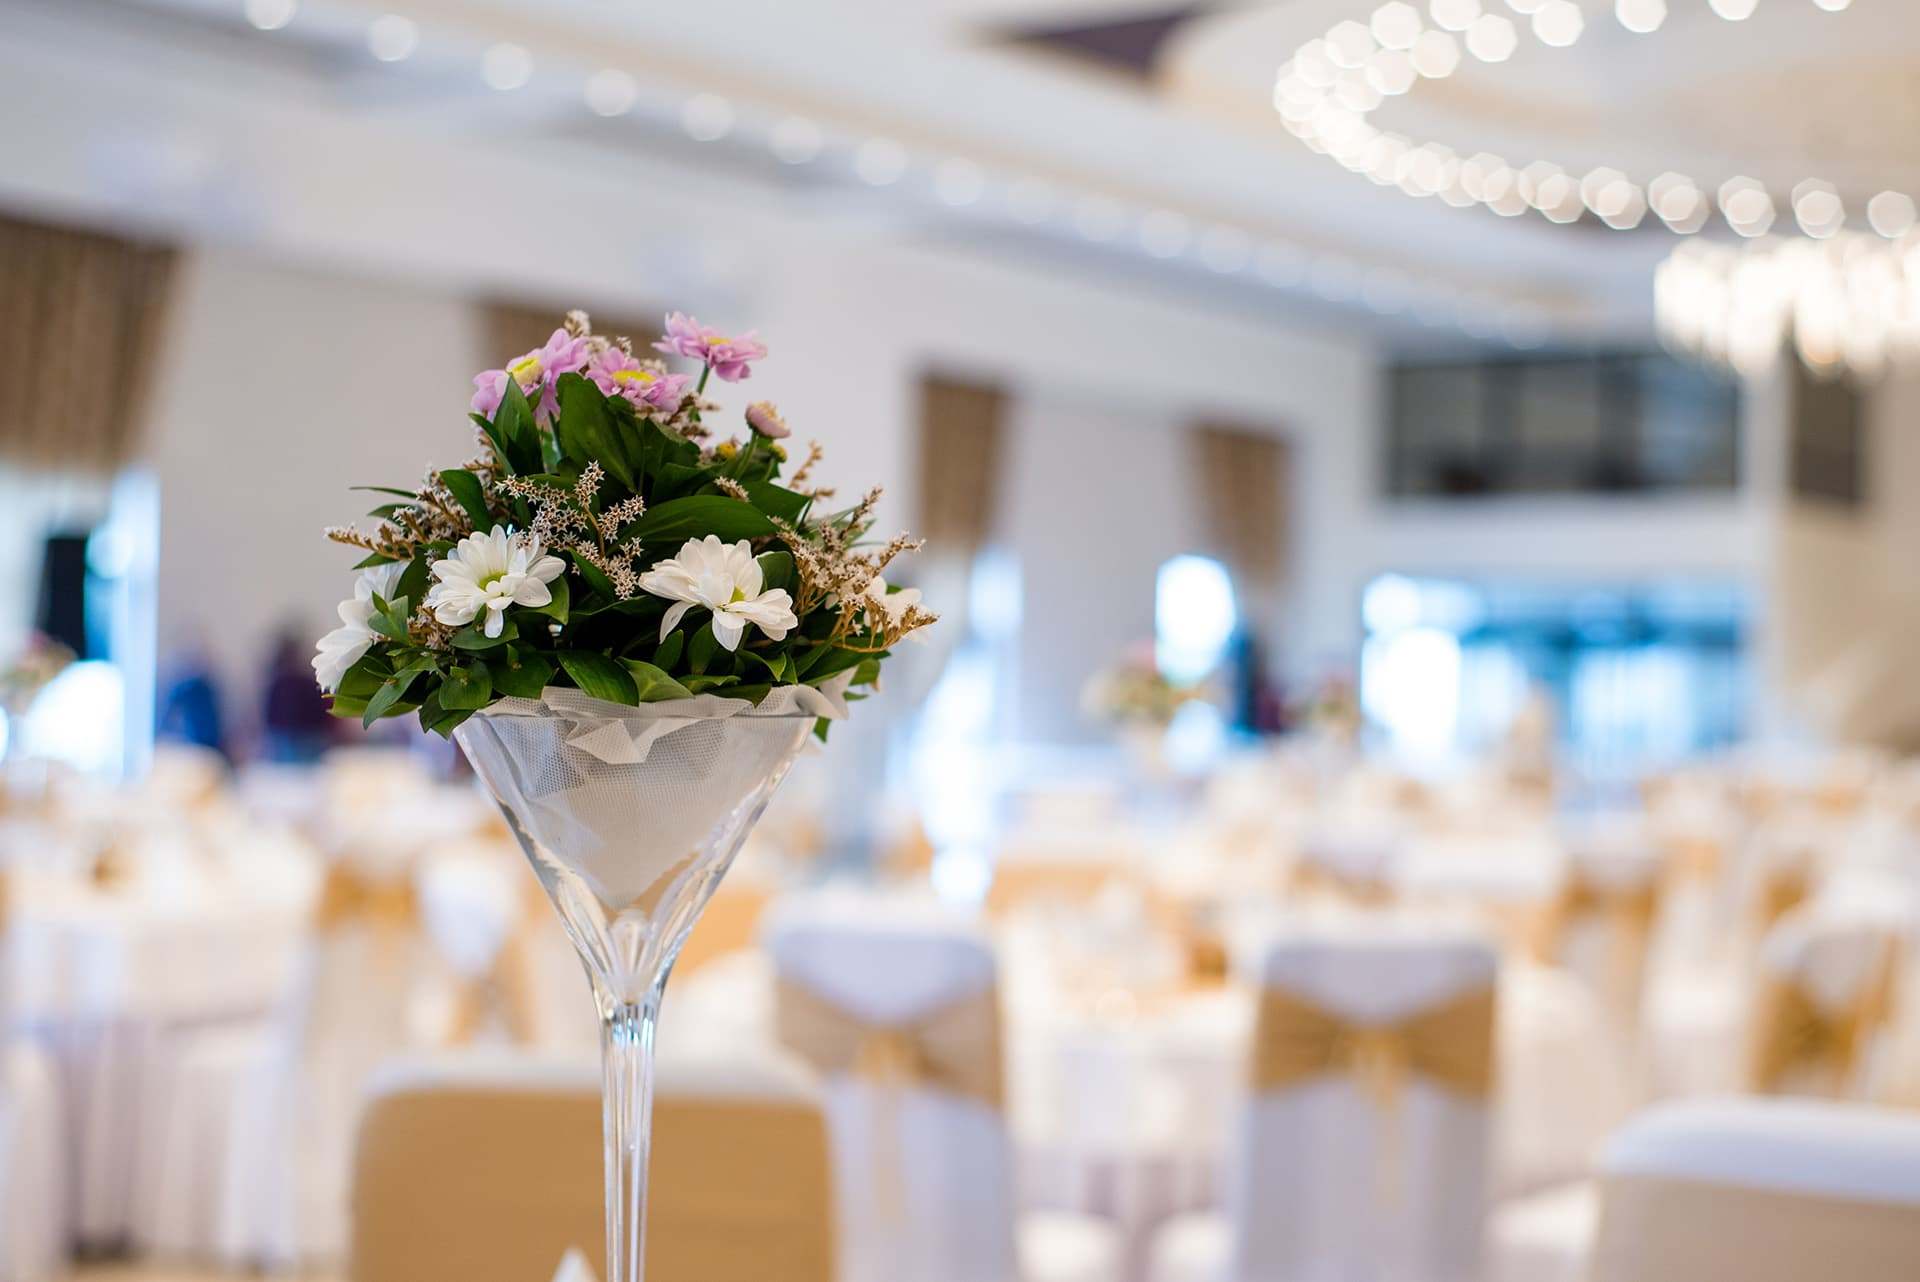 Event planner insurance at a wedding with a martini glass filled with flowers